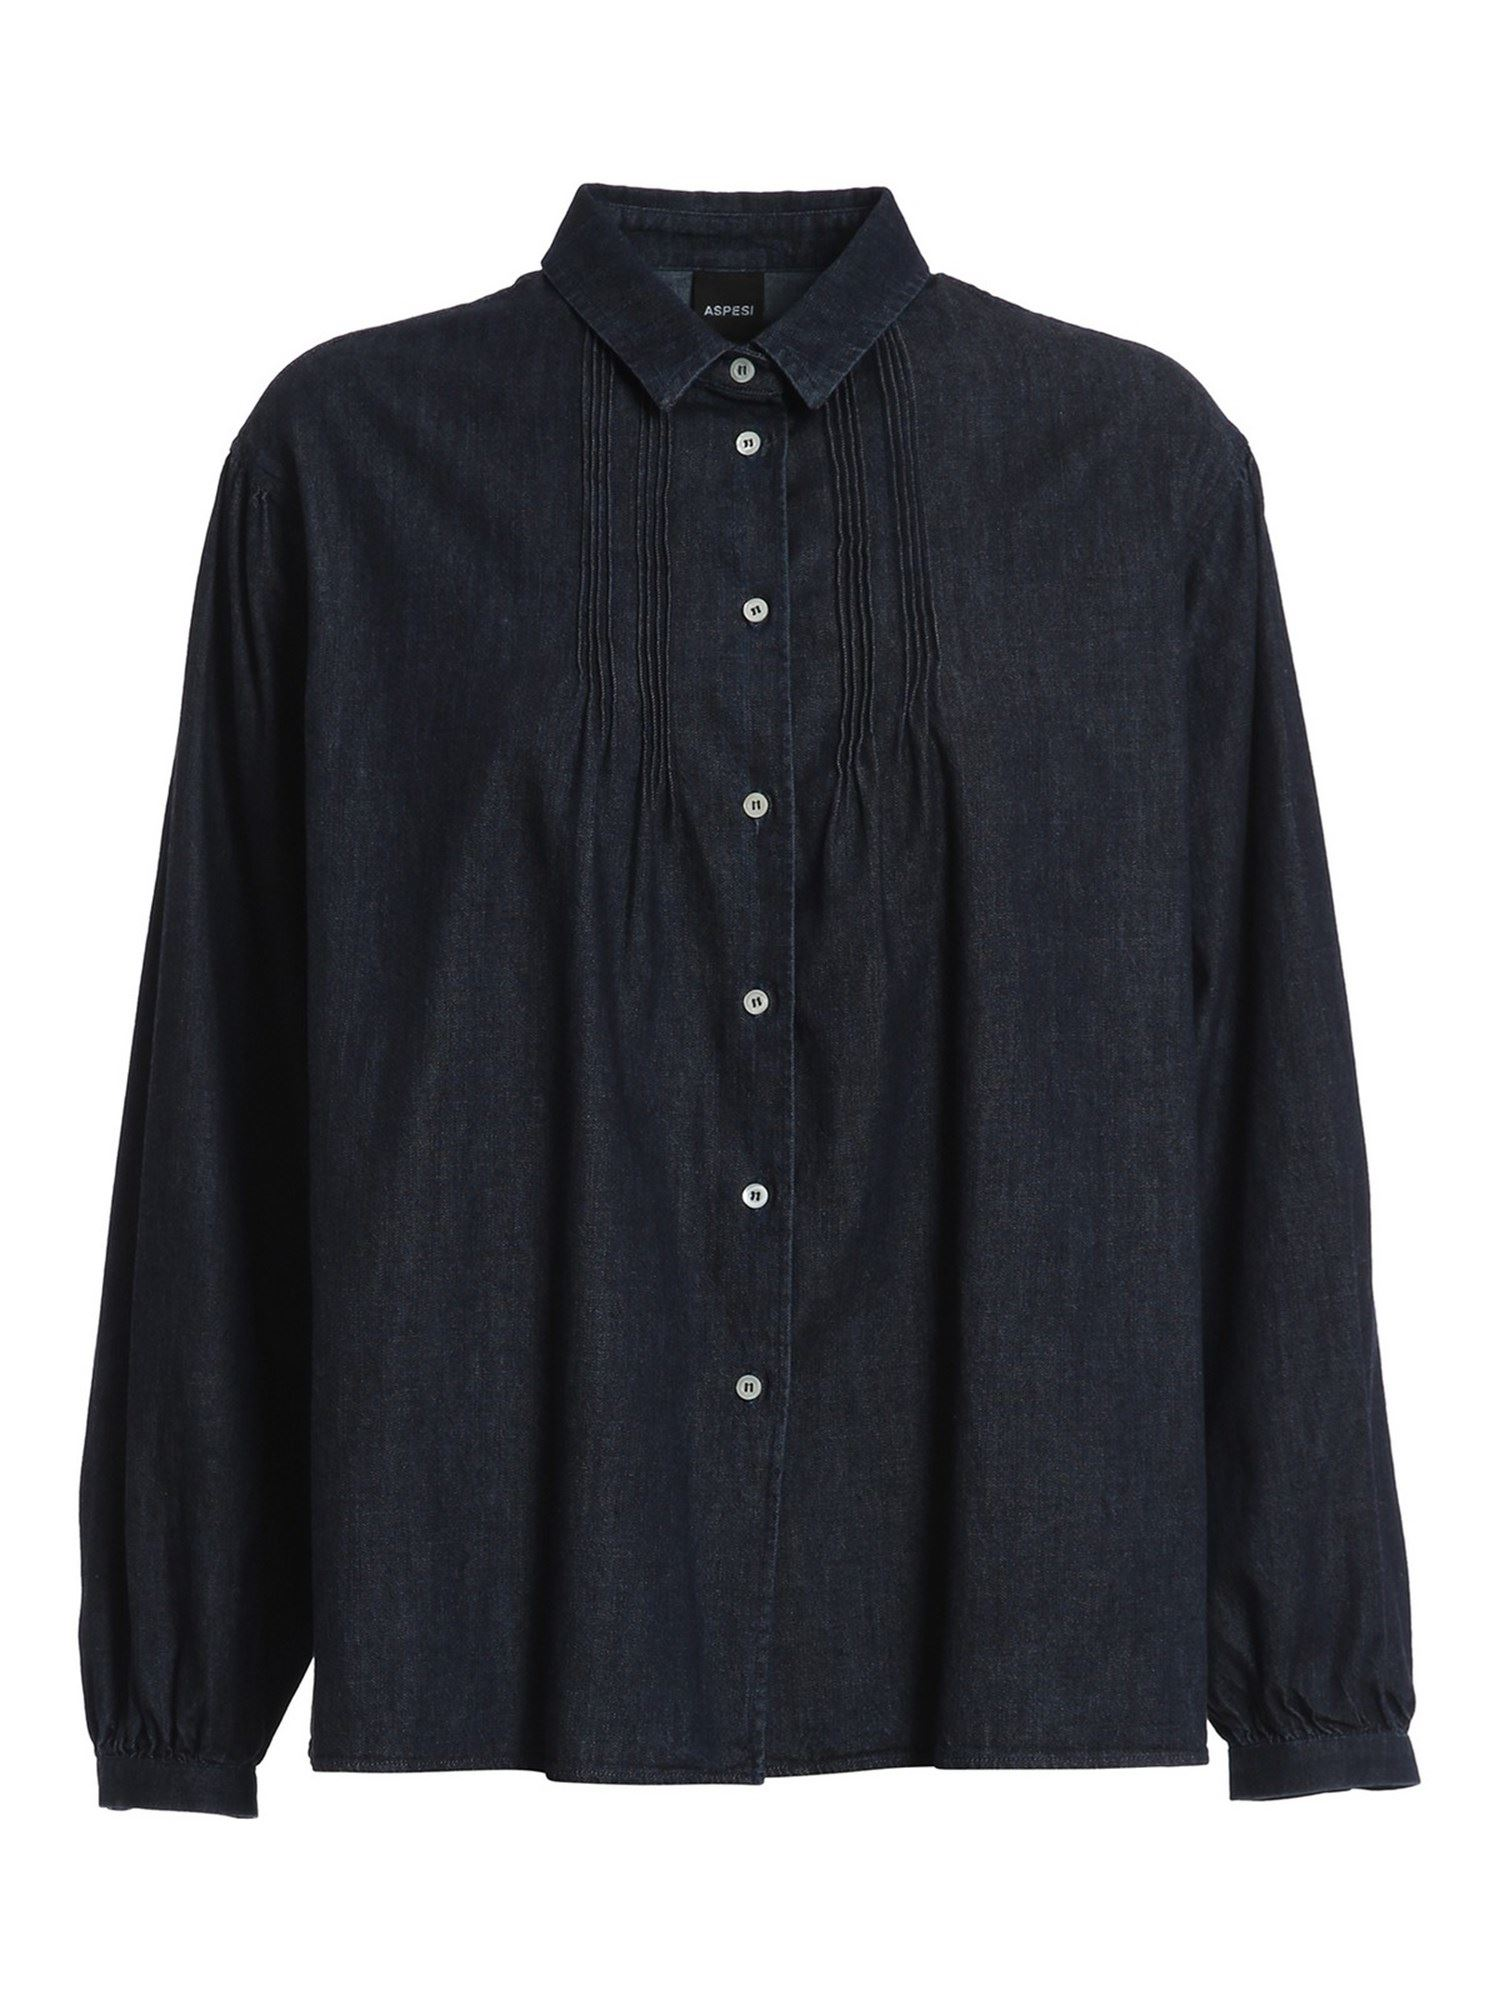 Aspesi GATHERED DENIM SHIRT IN BLUE